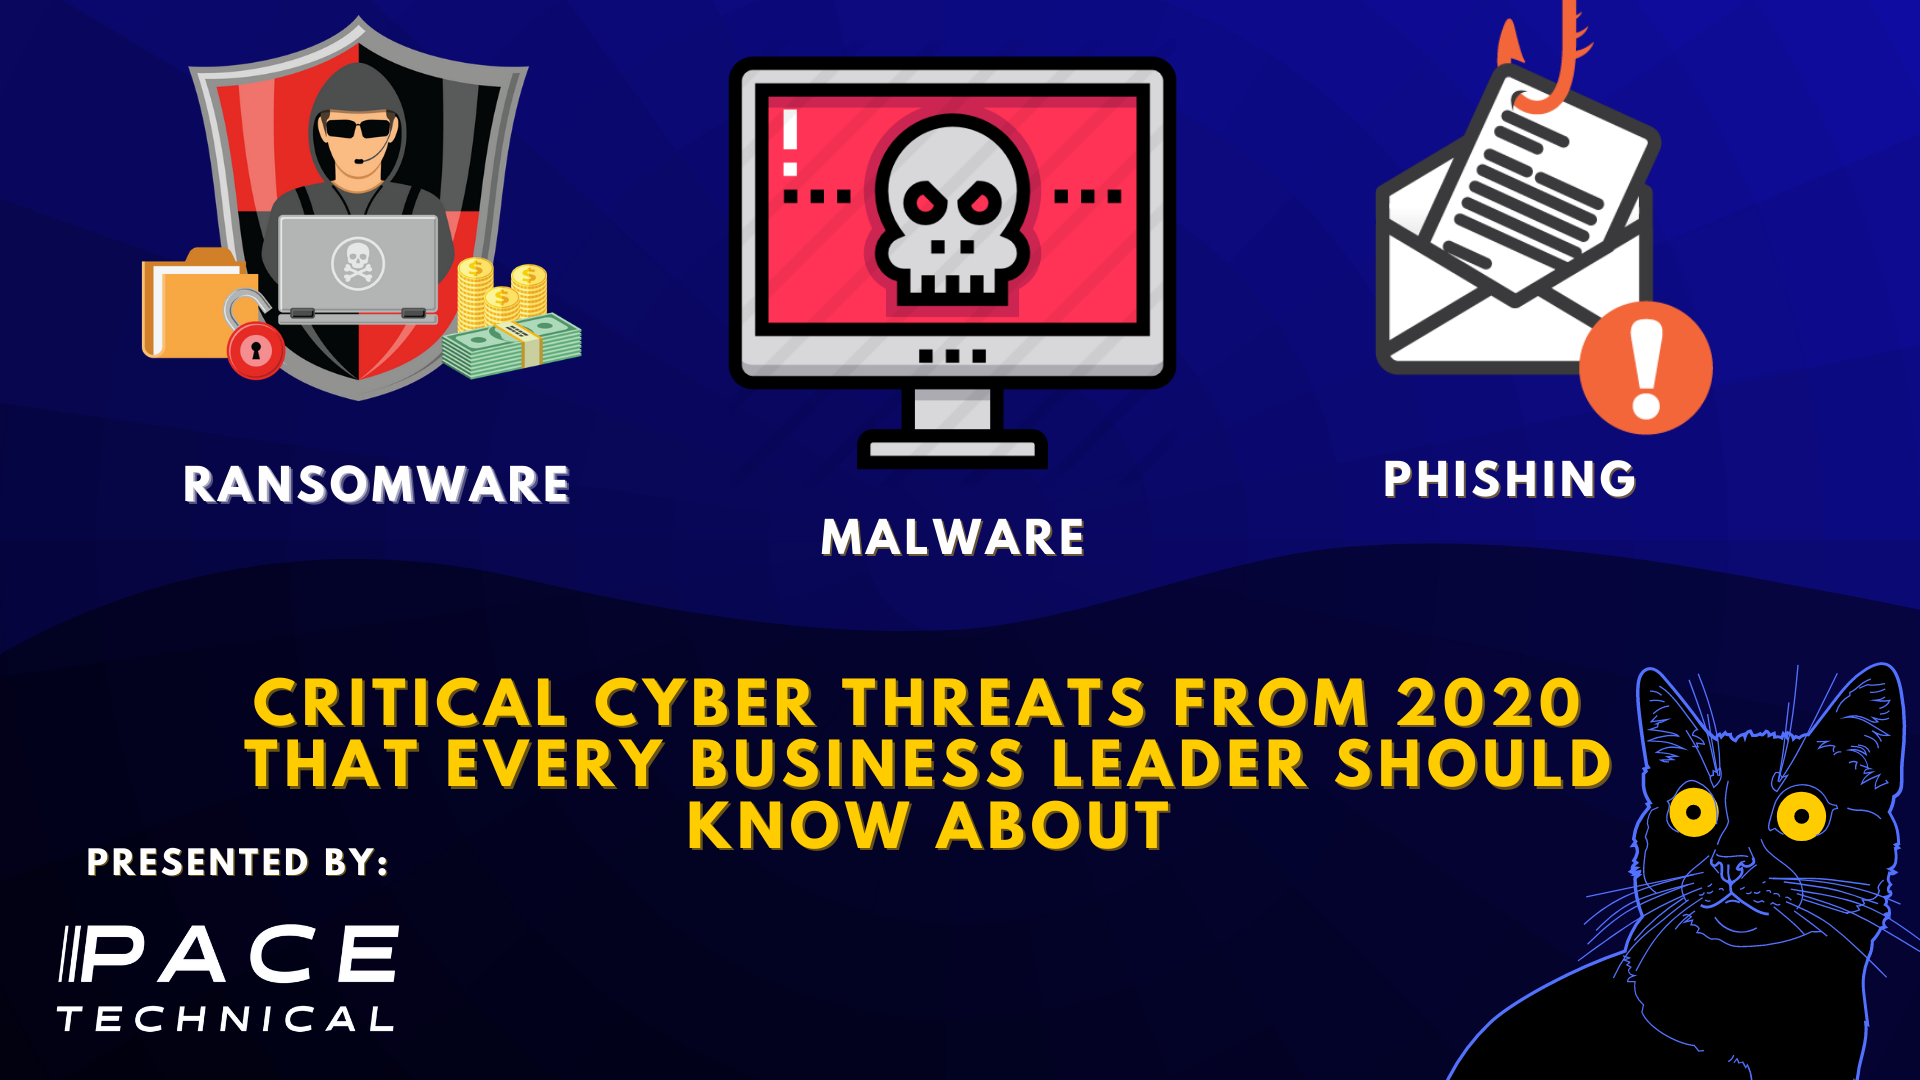 CRITICAL CYBER THREATS FROM 2020 _THAT EVERY BUSINESS LEADER SHOULD KNOW ABOUT